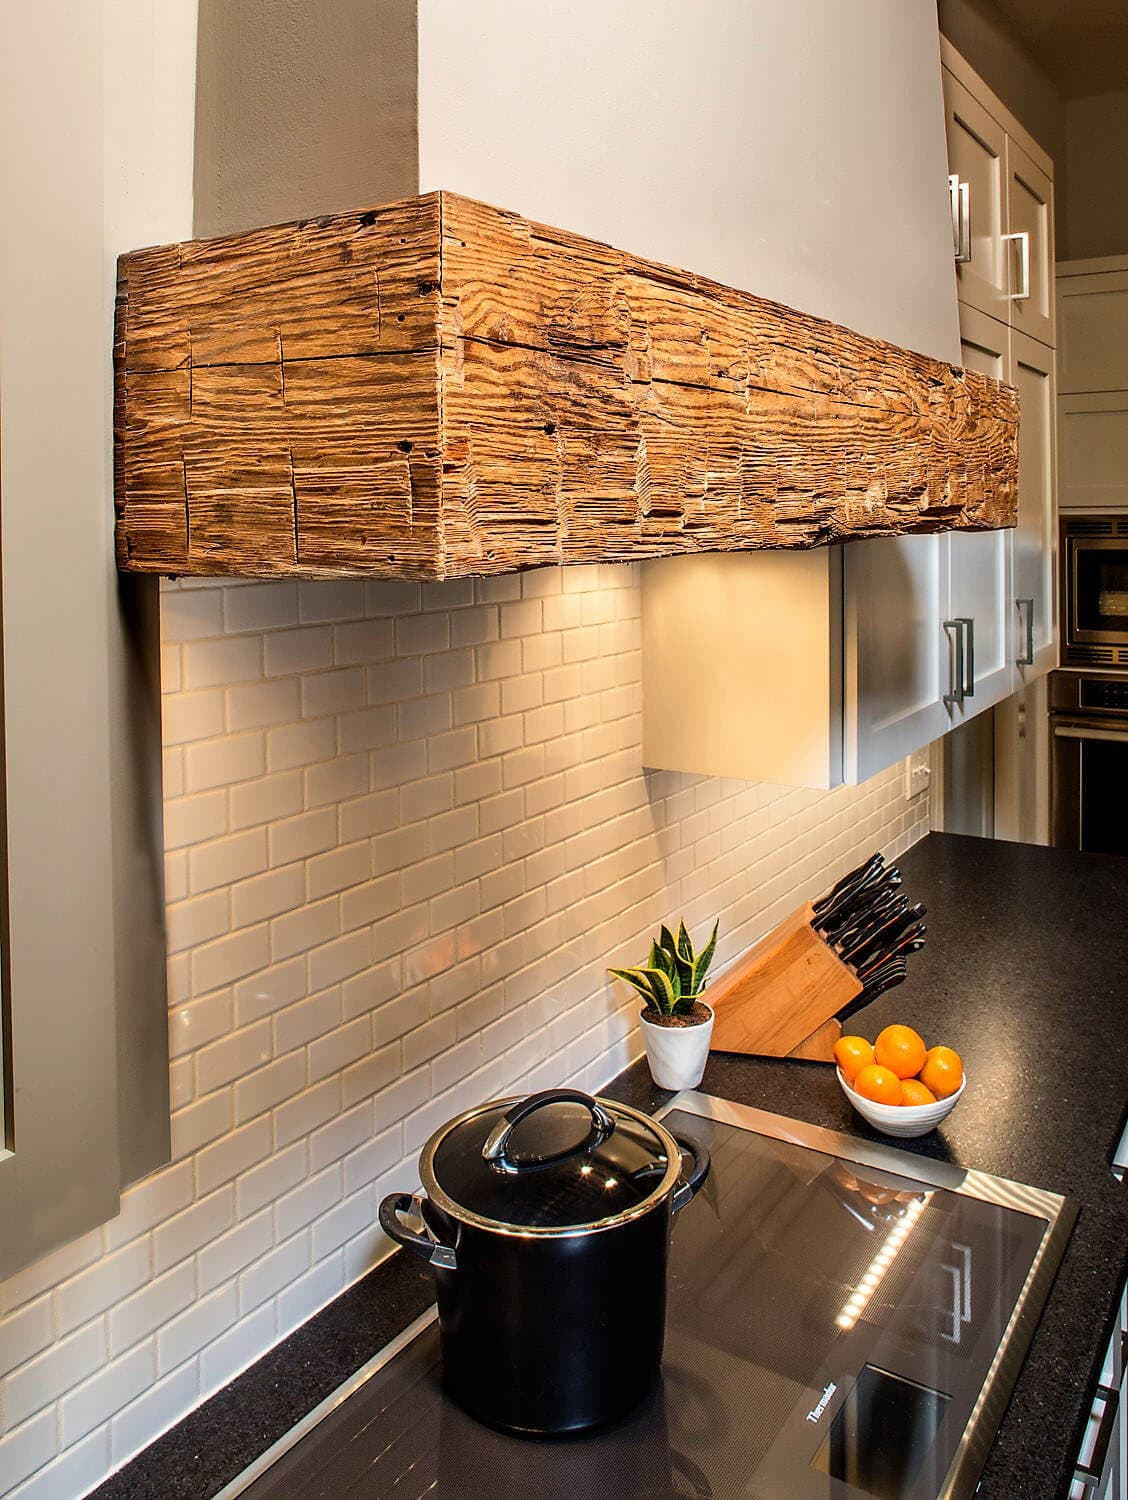 Reclaimed wood for custom crafted kitchen stove hood.